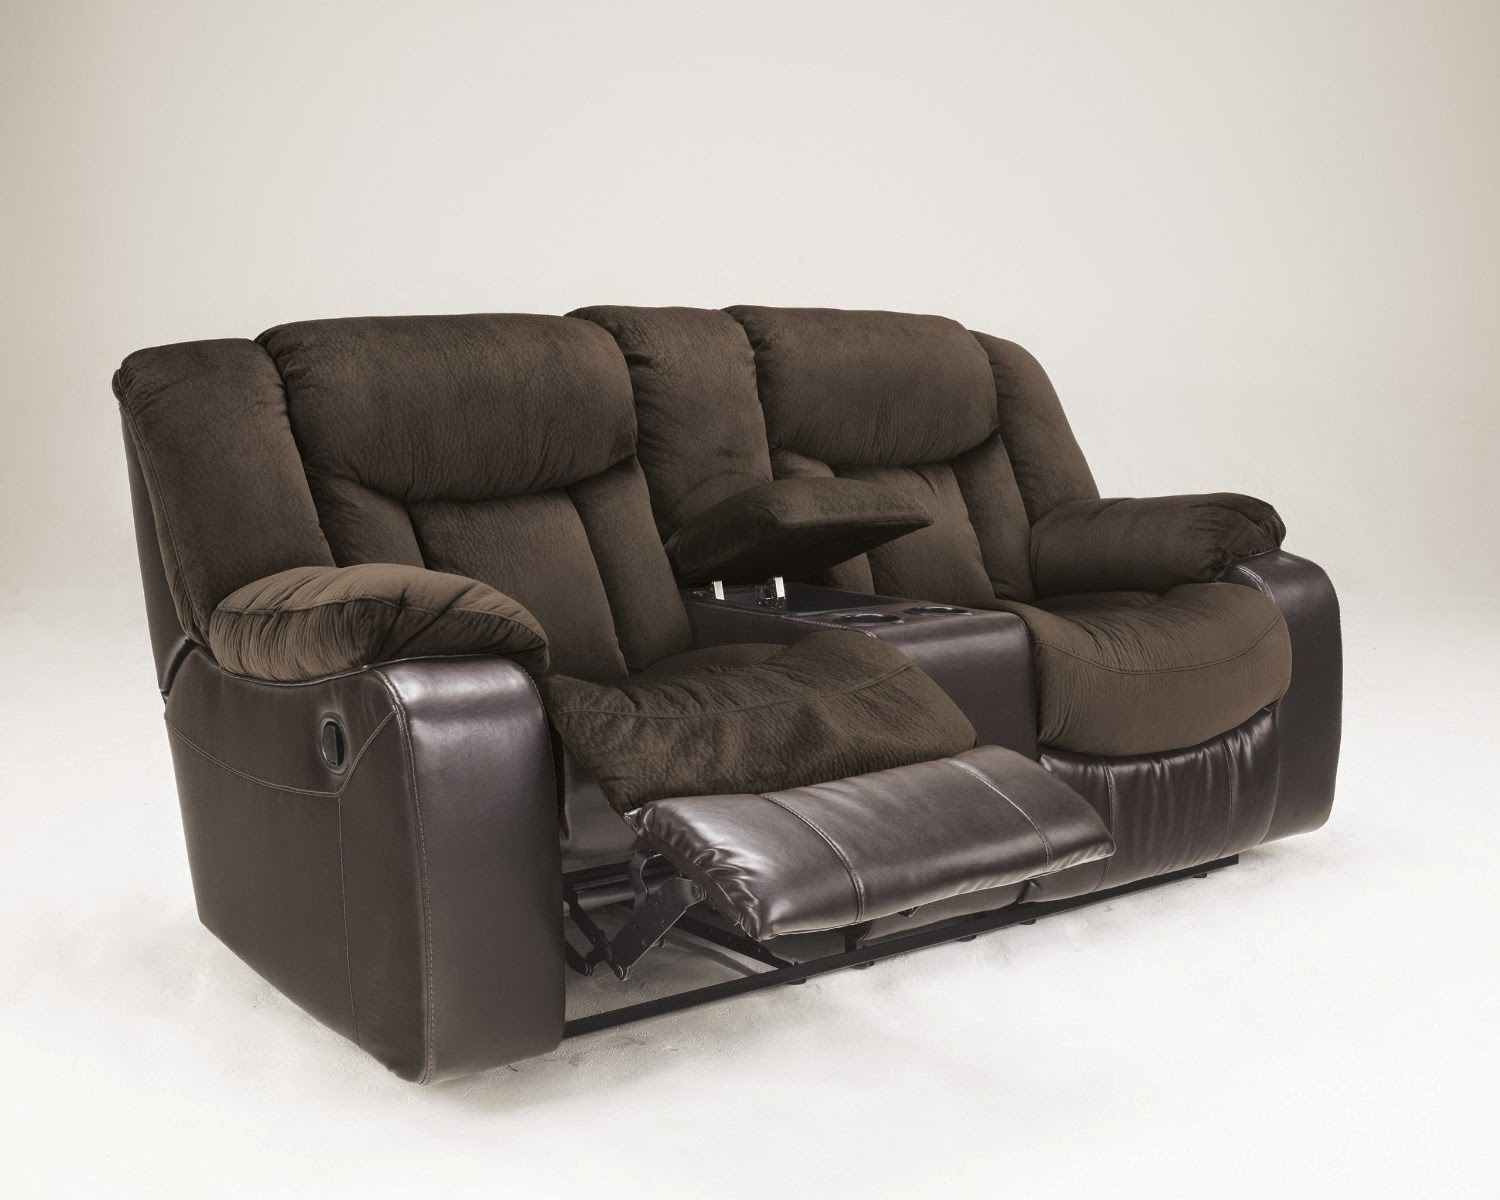 best place to buy sectional sofa ikea kivik cover washing where is the recliner ashley faux